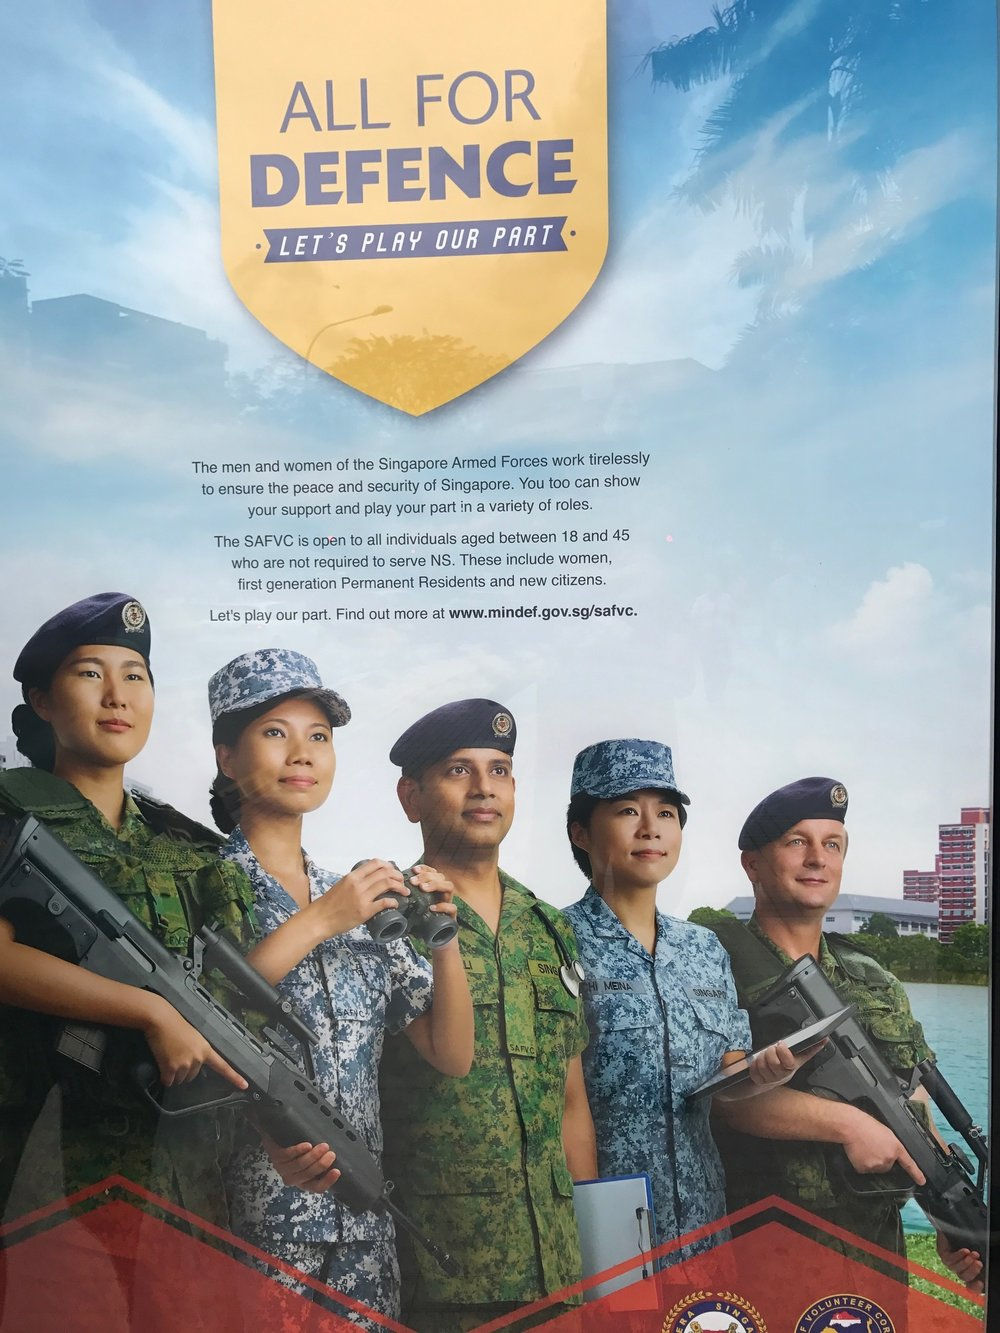 And the babies turn into this. Actually military service is mandatory for all.